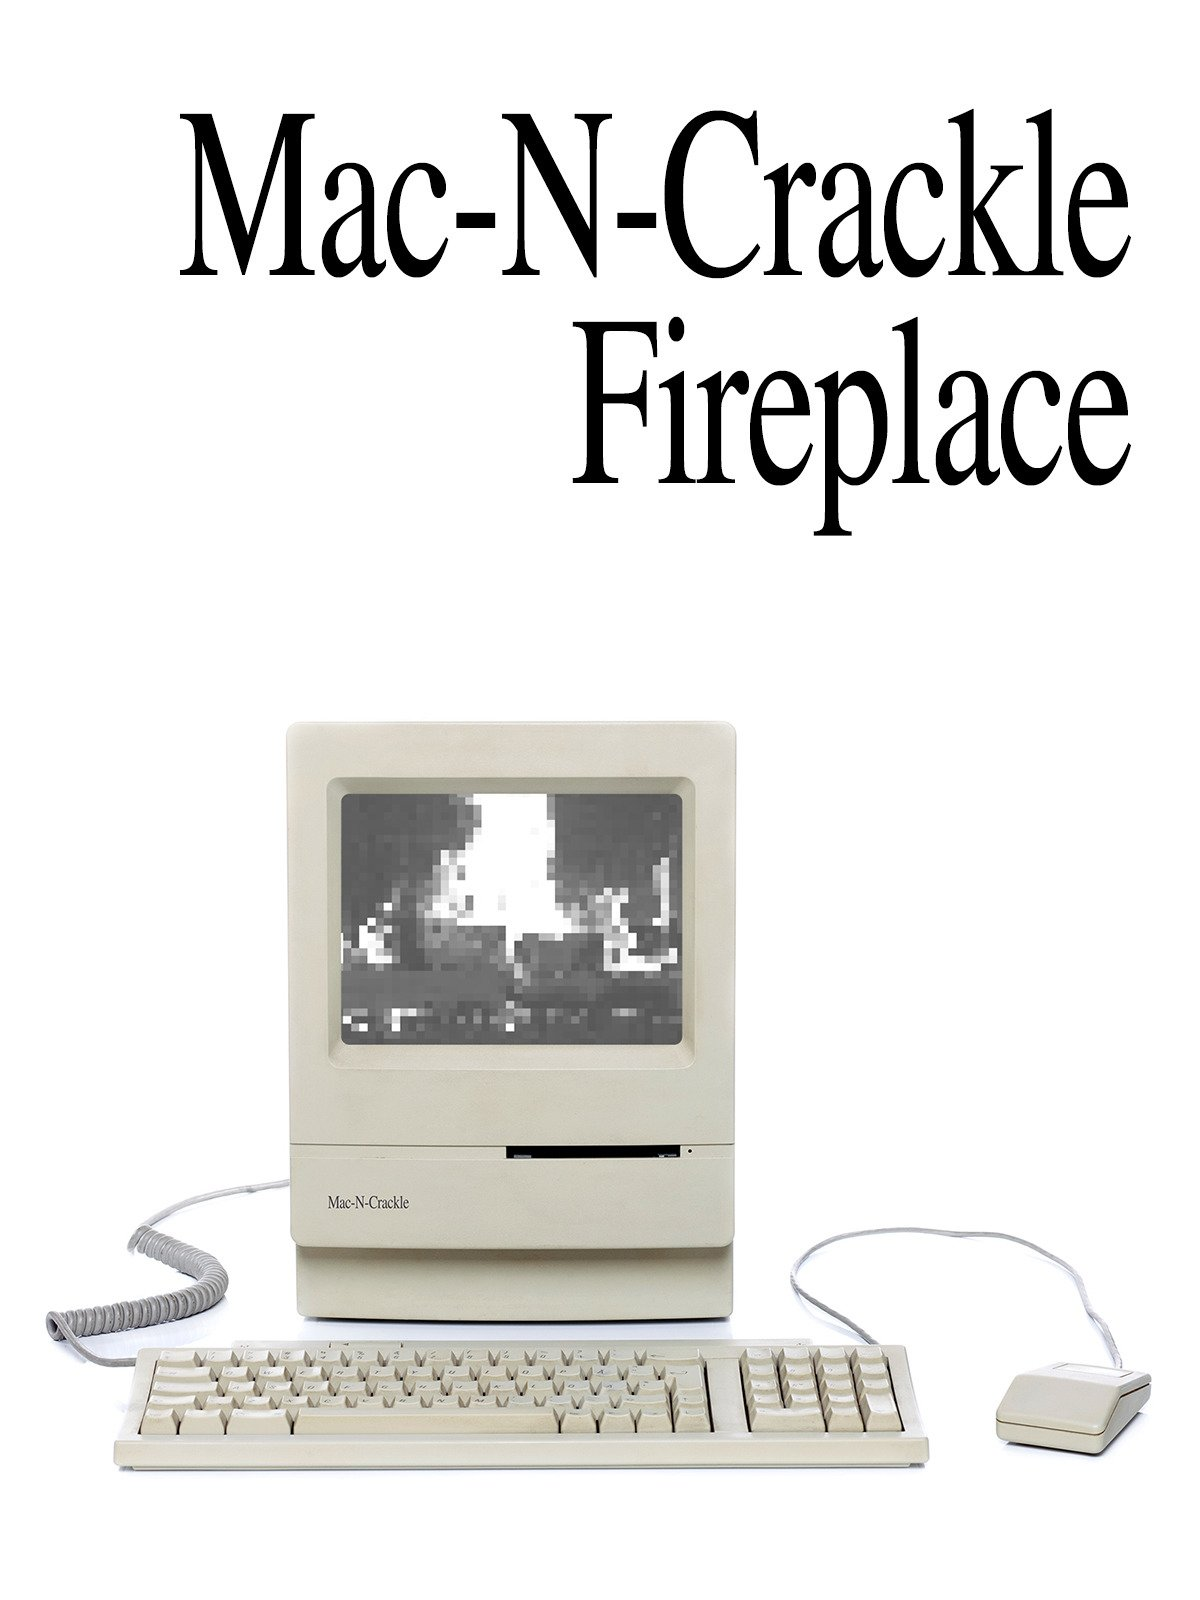 Mac-N-Crackle